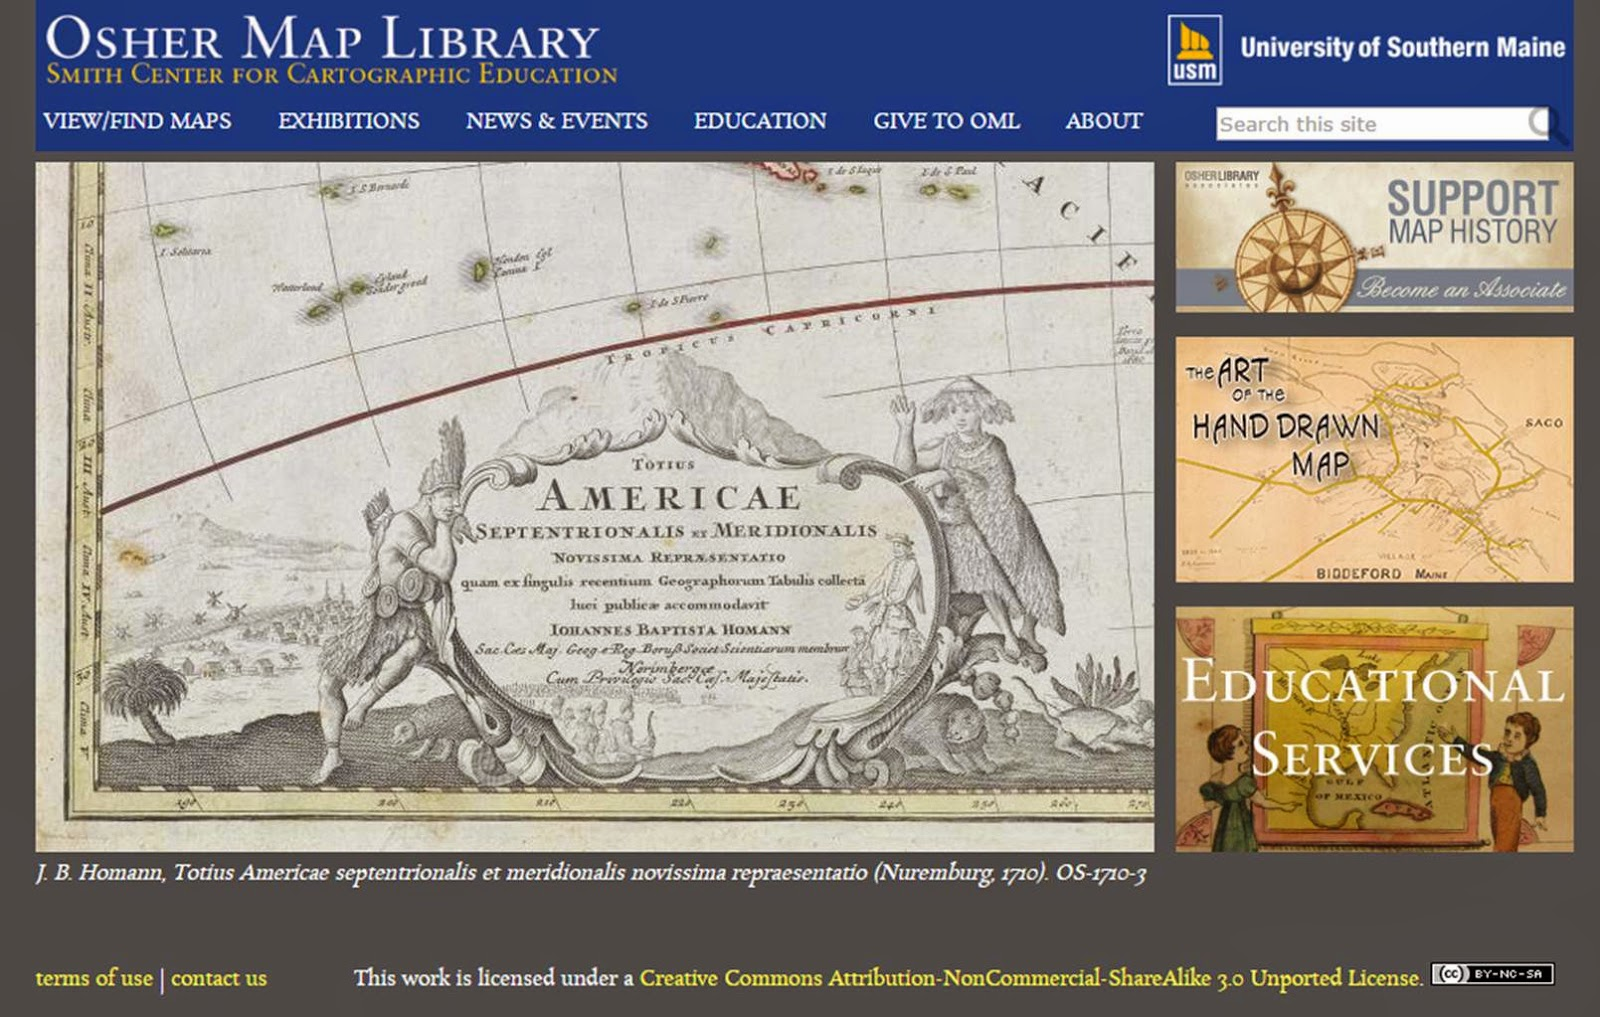 Osher Map Library, Smith Center for Cartographic Education, University of Southern Maine.